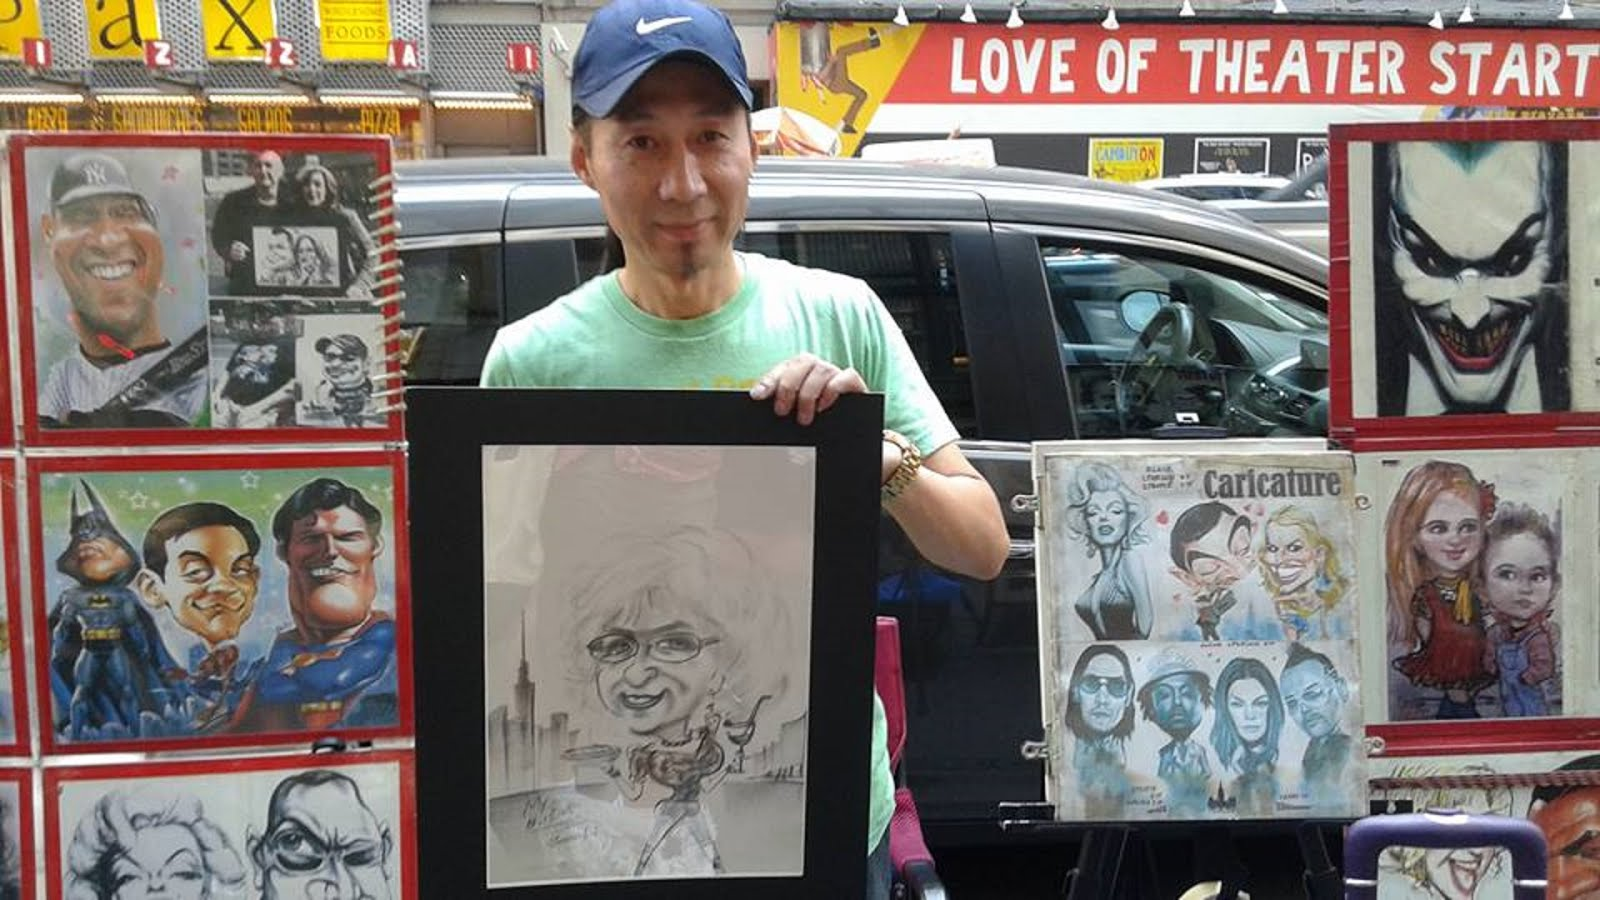 Quan Li  Great Caricature Artist Near Times Square